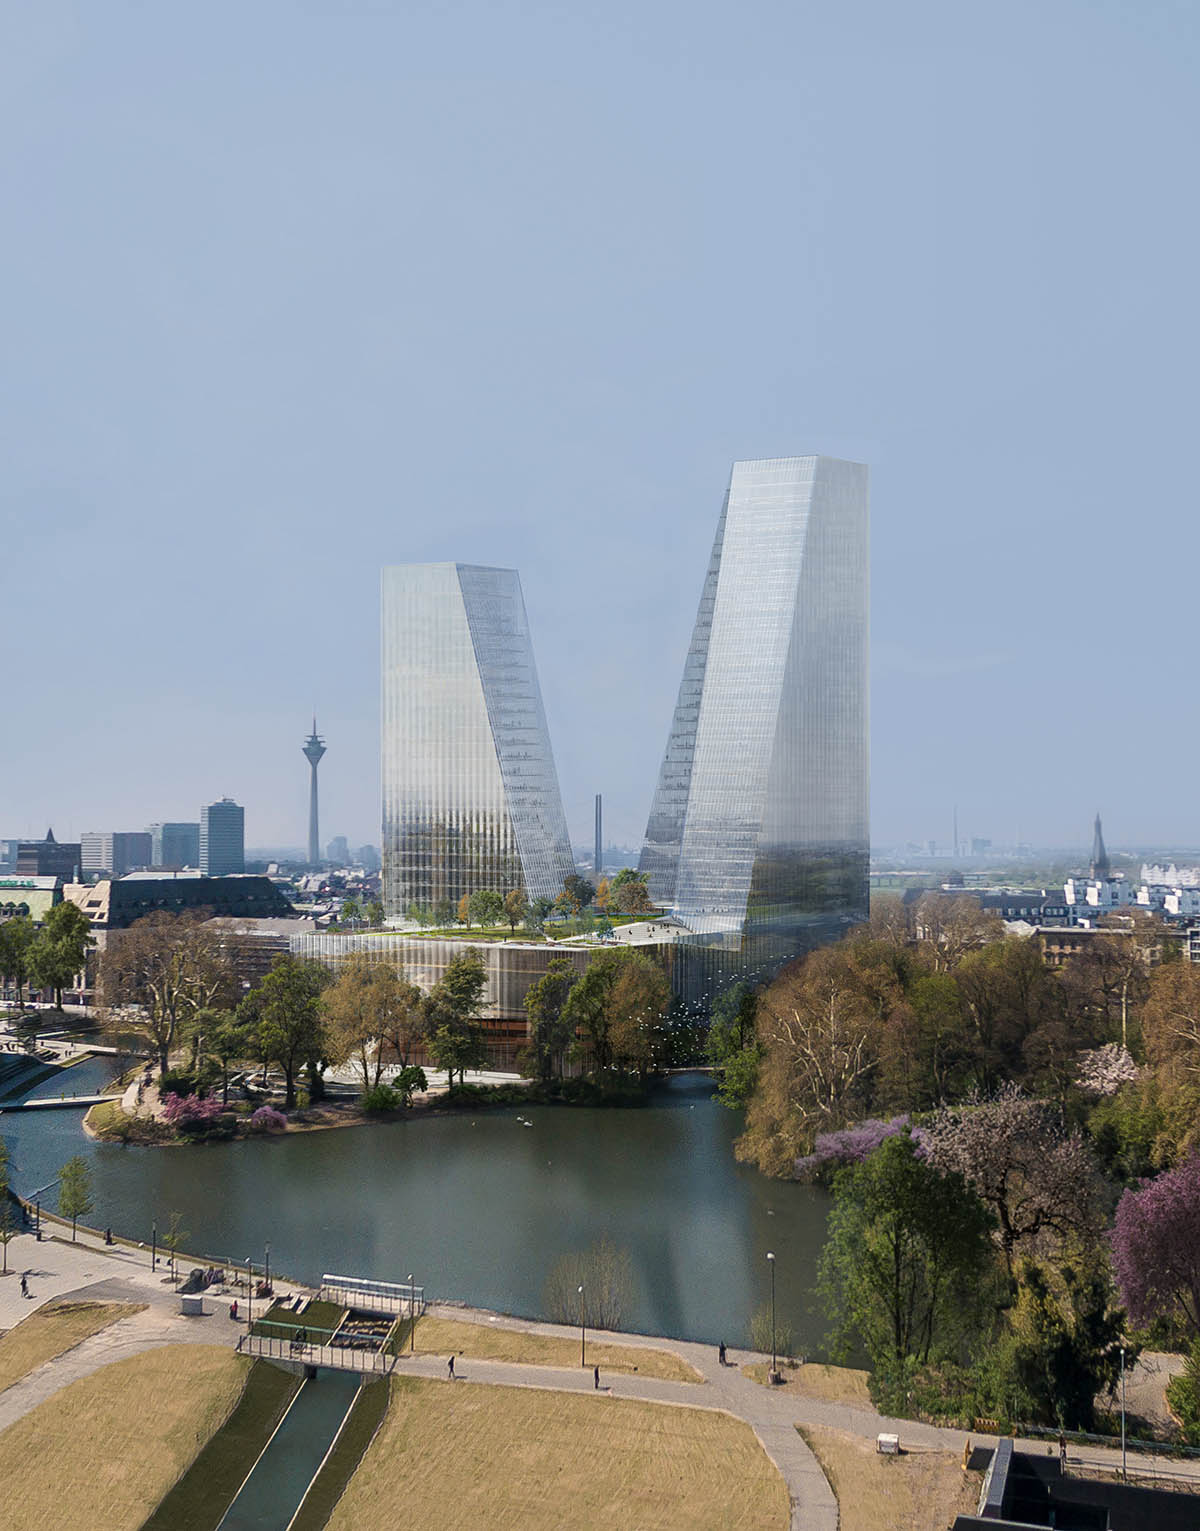 Snøhetta designs new Opera House in Düsseldorf with a pair of iconic dancing towers